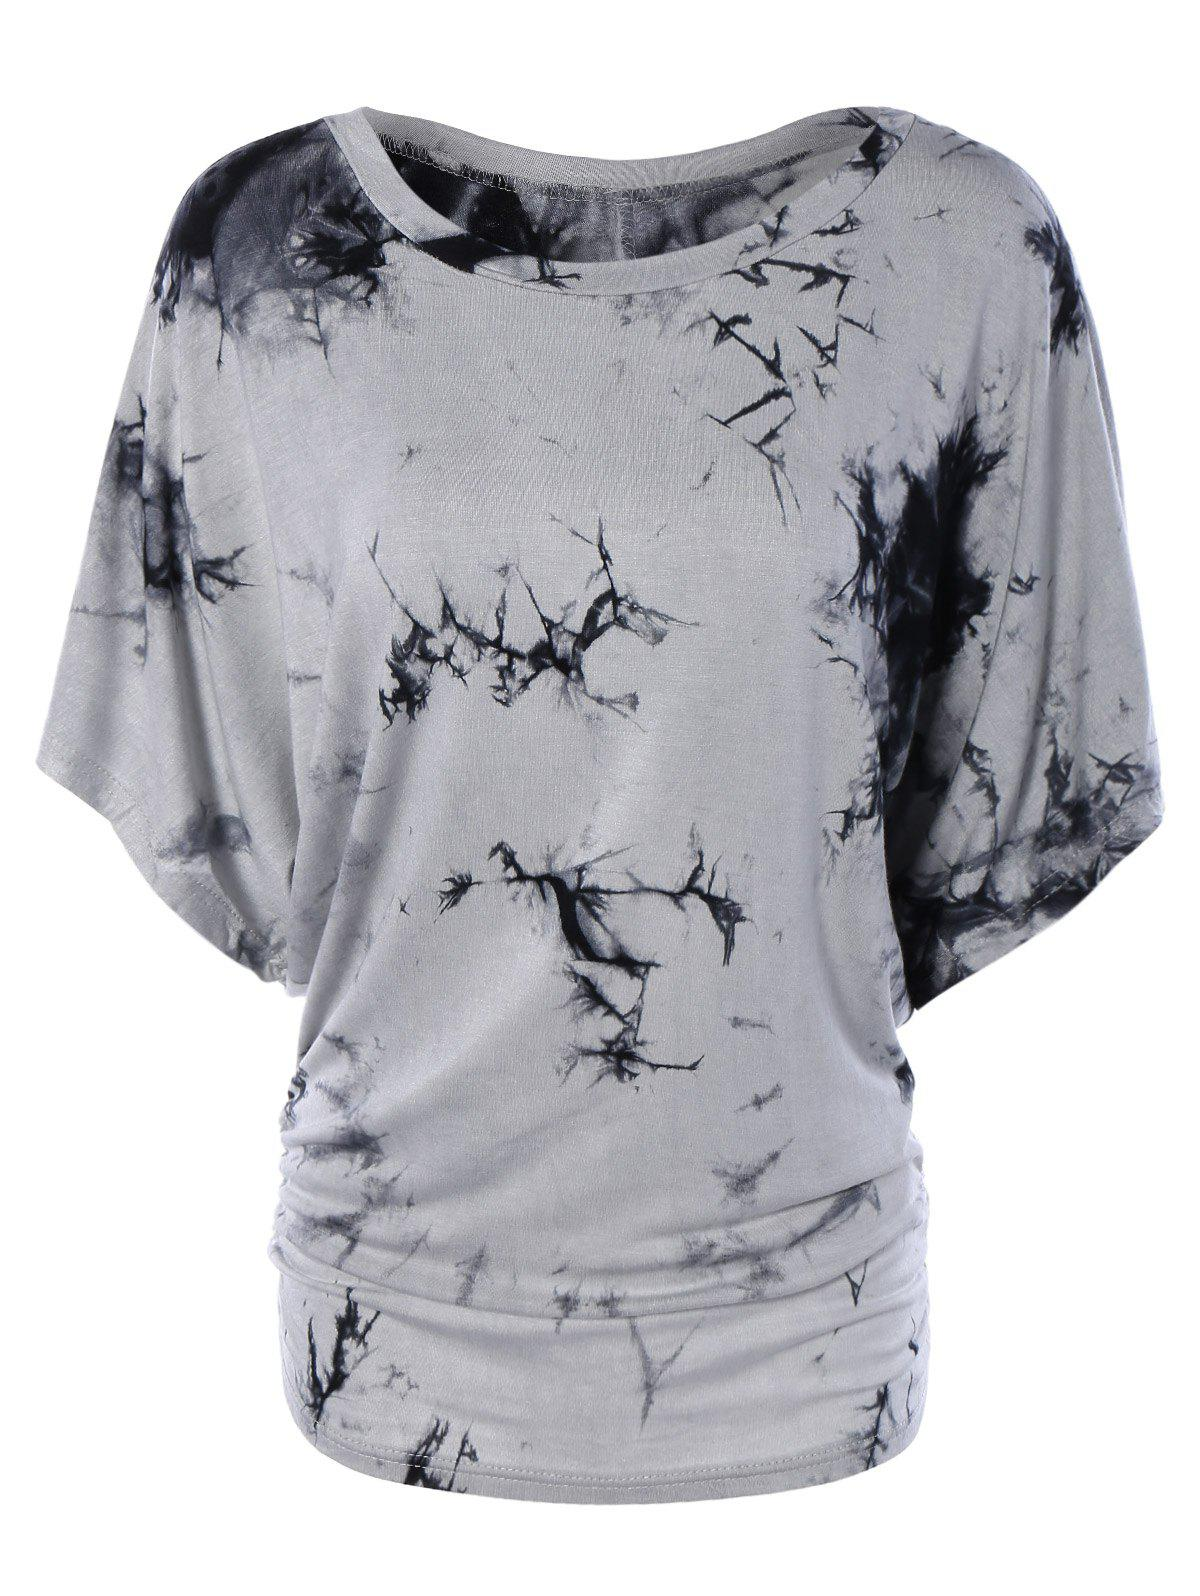 Scoop Neck Dolman Sleeve Tie-Dyed T-Shirt - GRAY XL